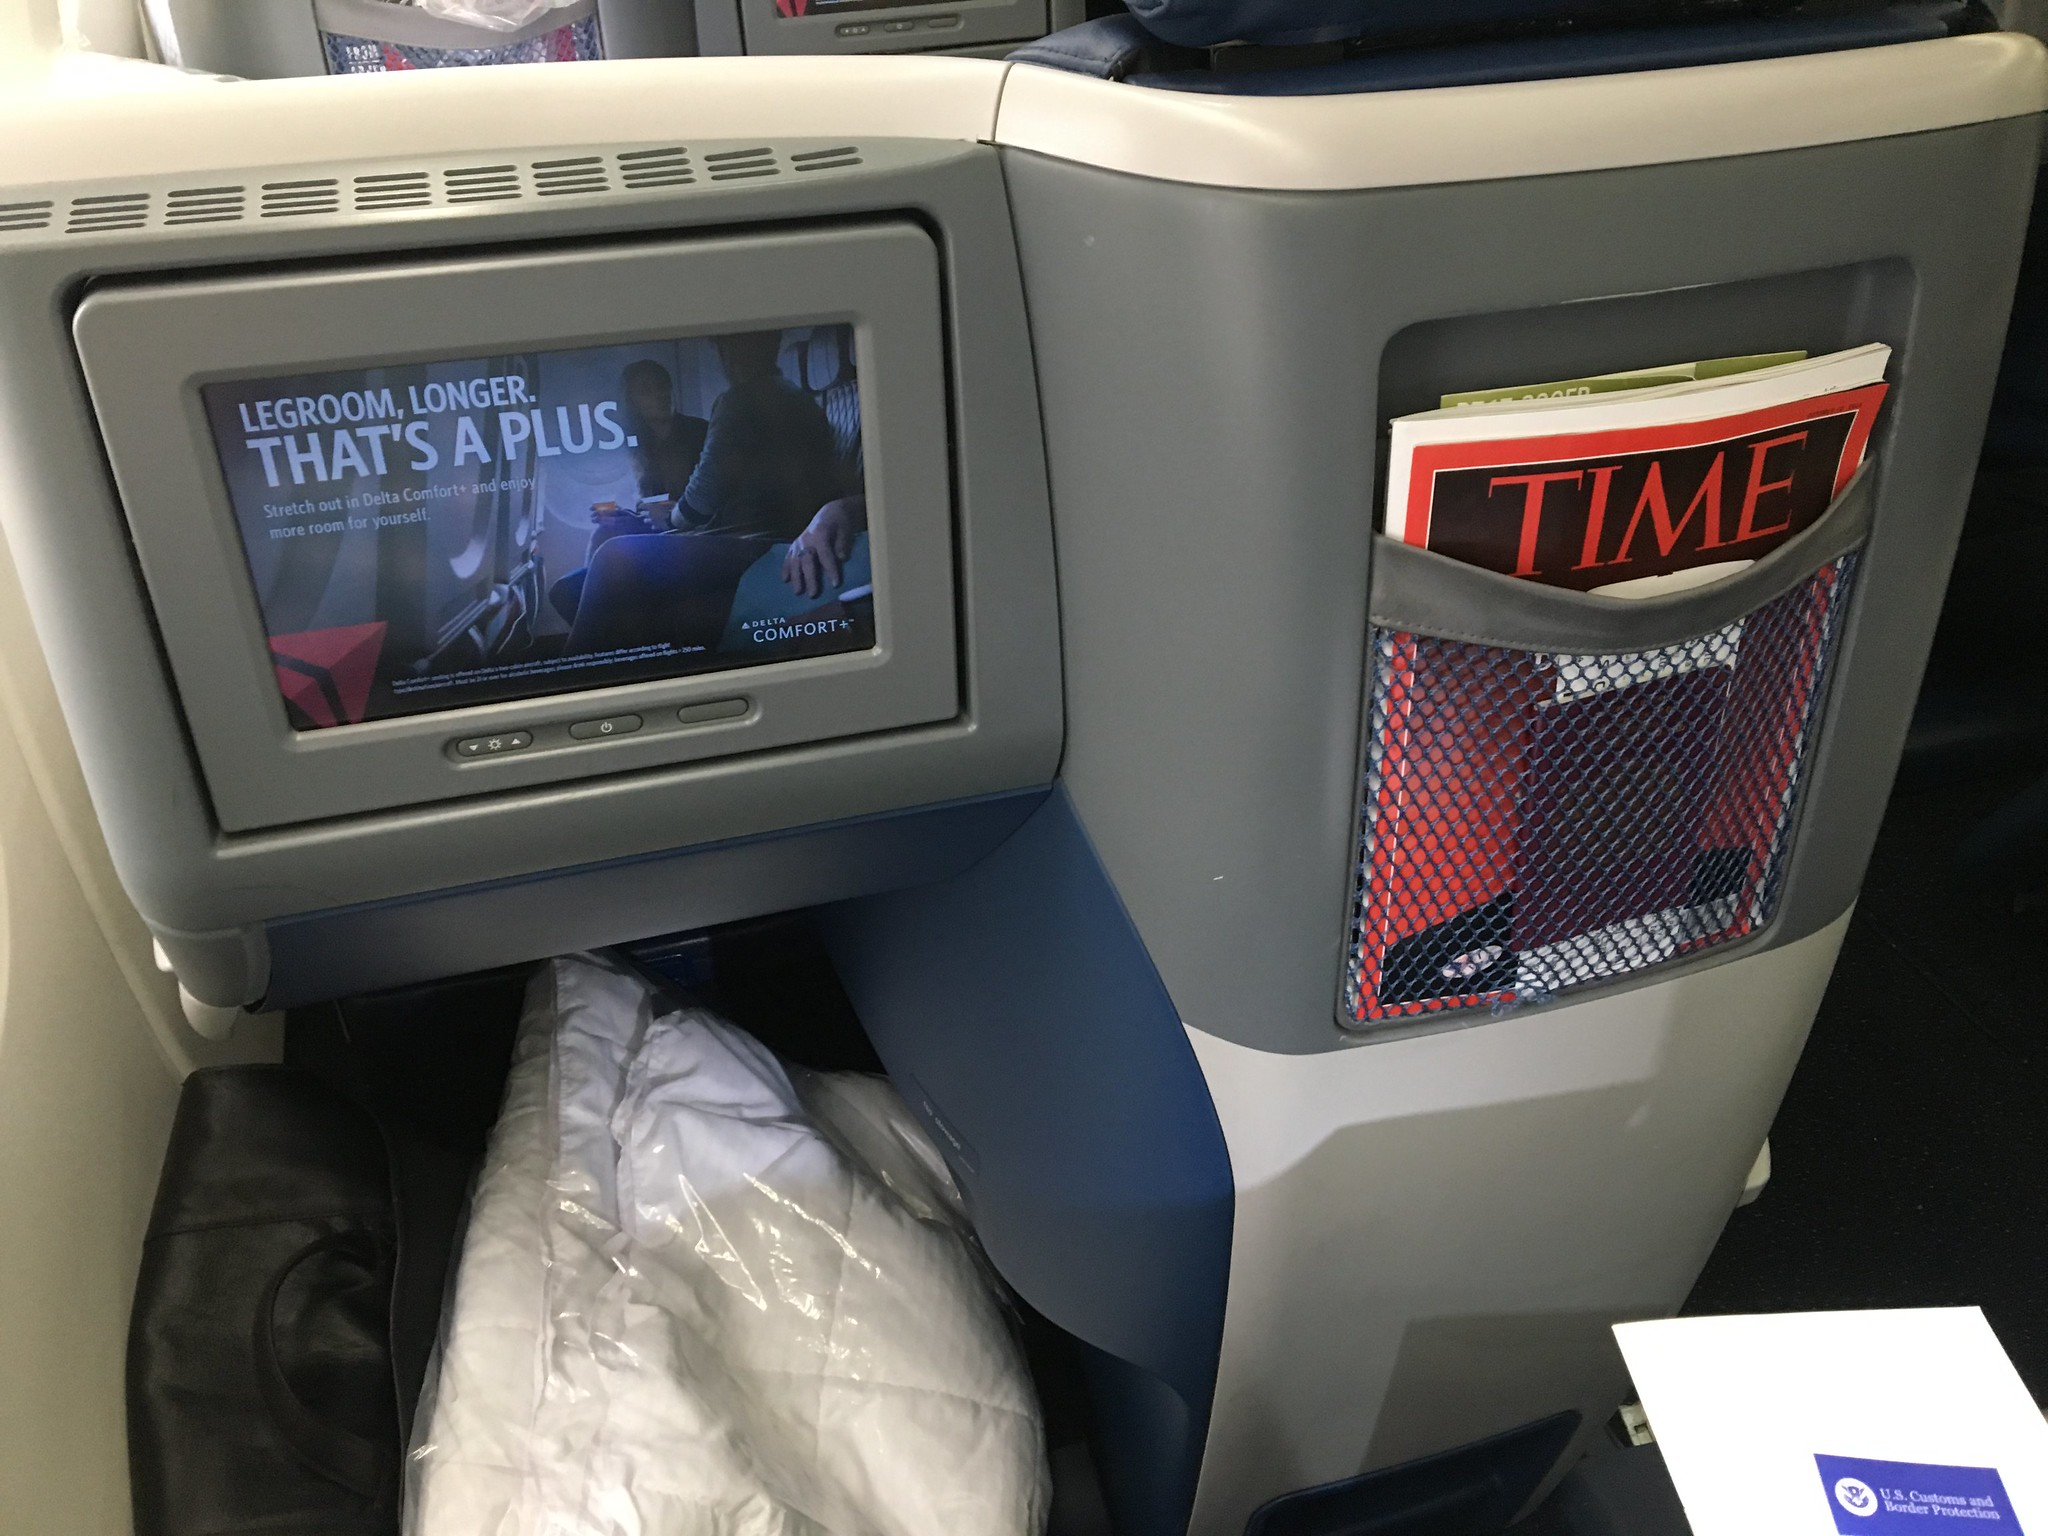 Review of Delta Air Lines flight from London to Boston in